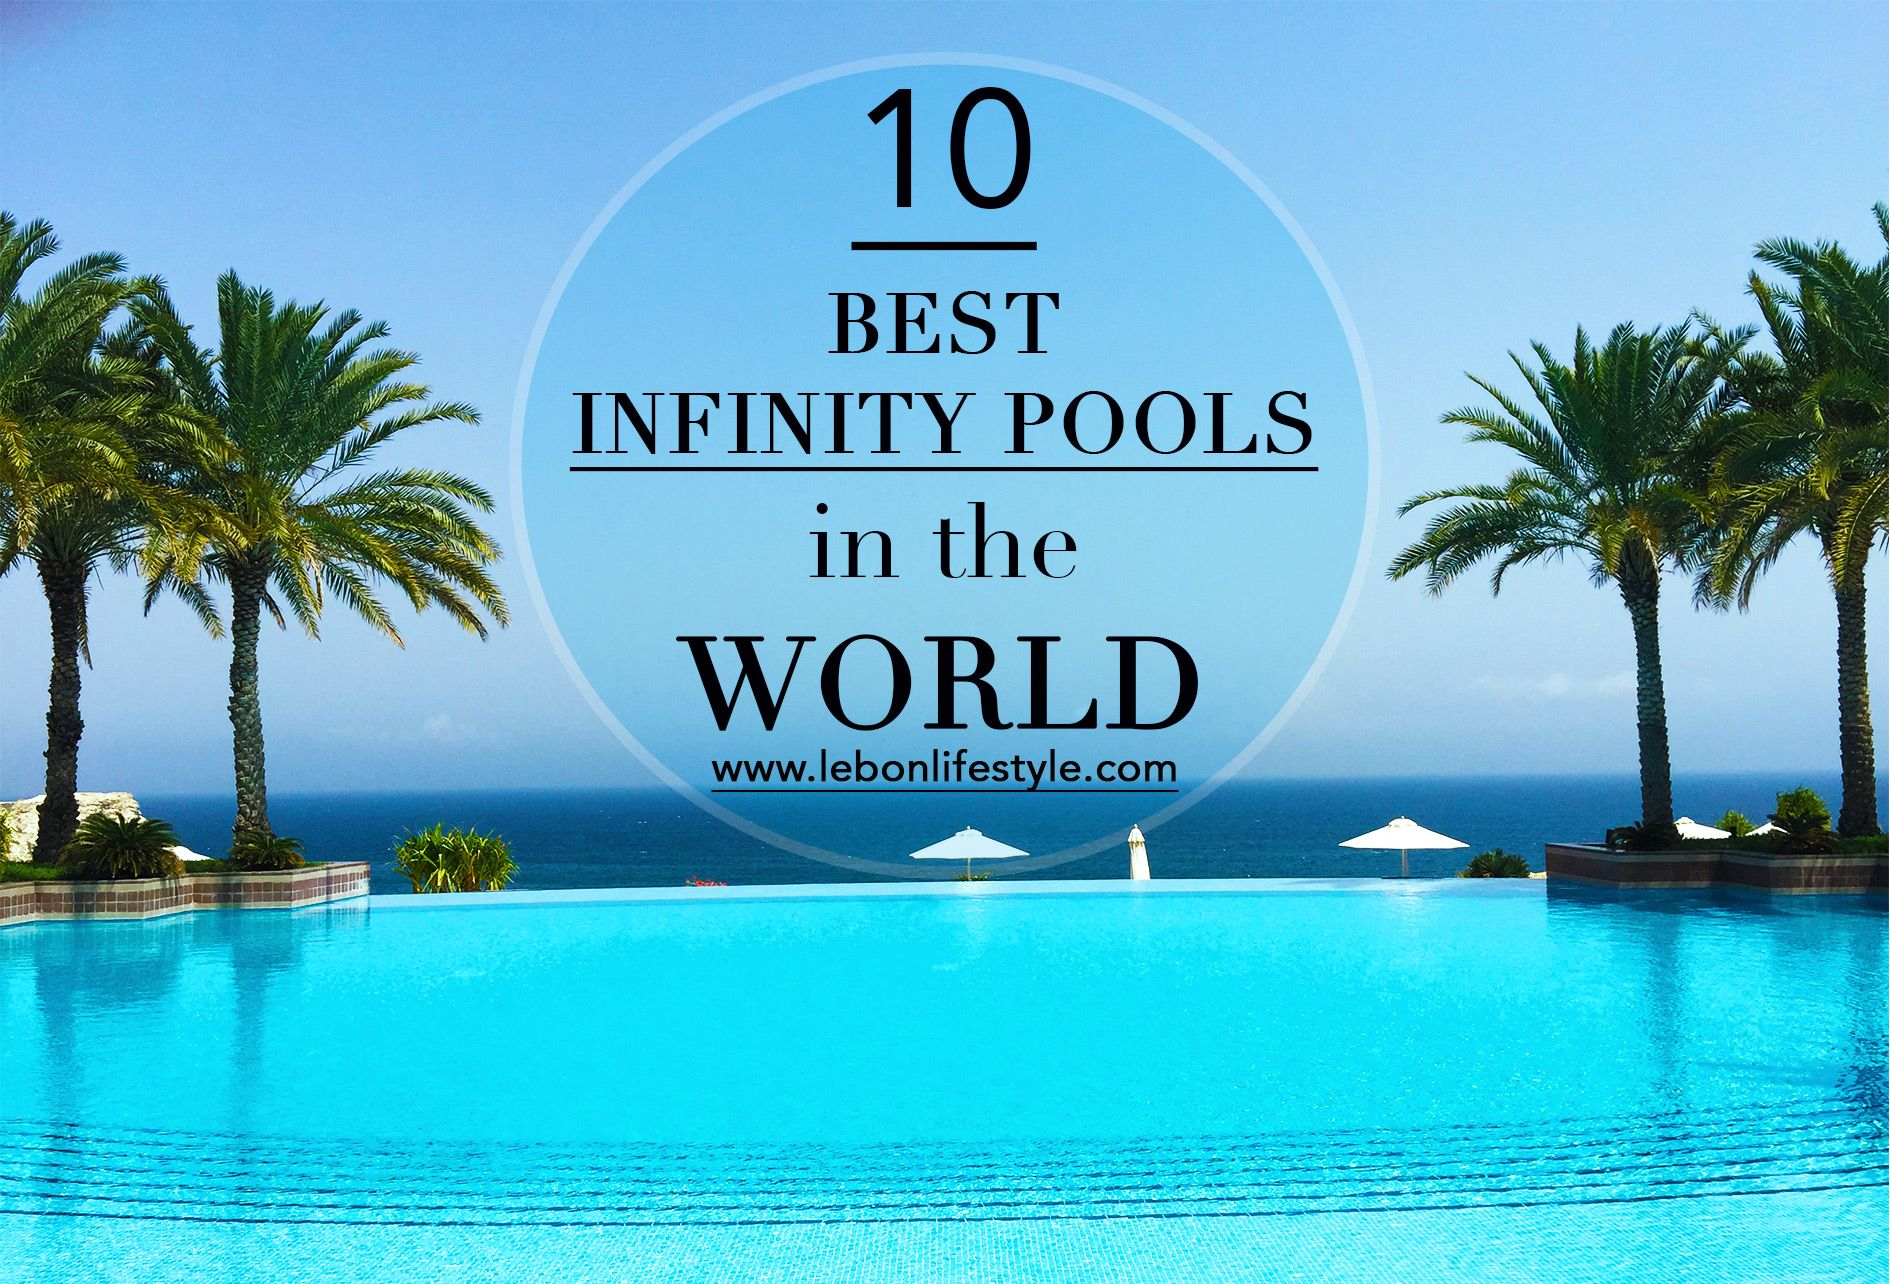 List Of The 10 Best Infinity Pools In World Luxury Travel And Lifestyle